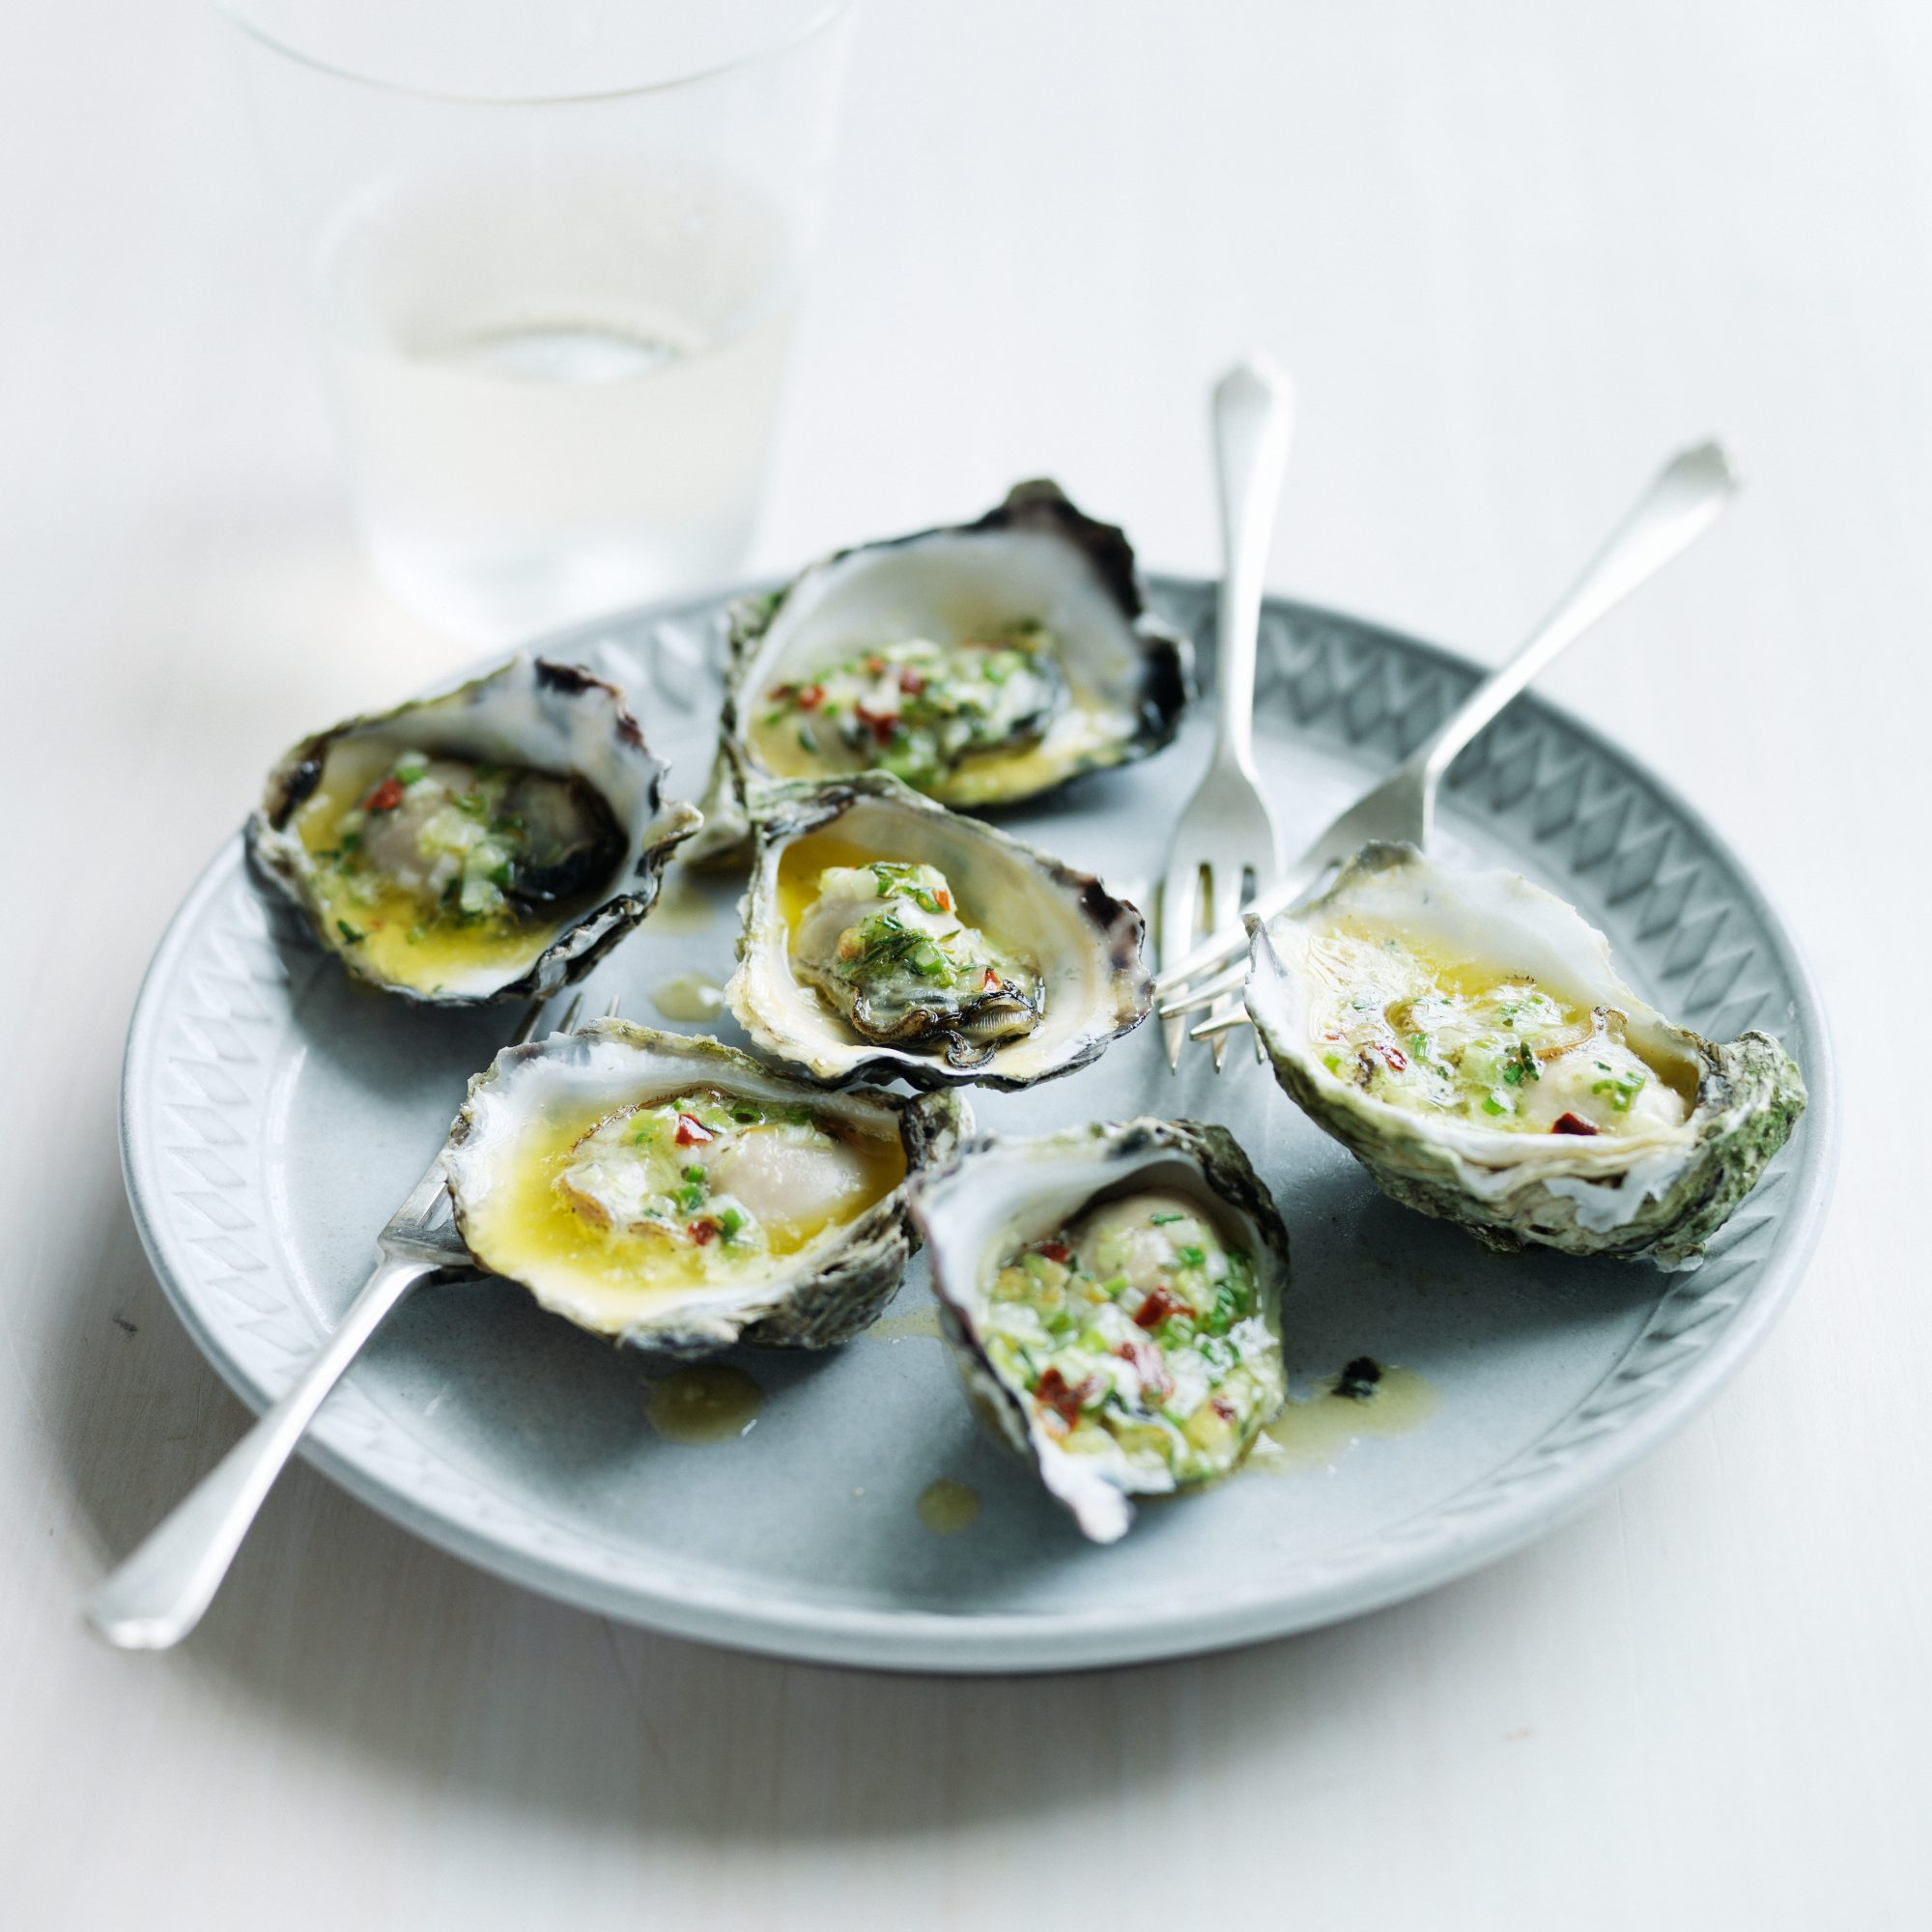 Fire-Grilled Oysters with Green Garlic and Pastis Butter